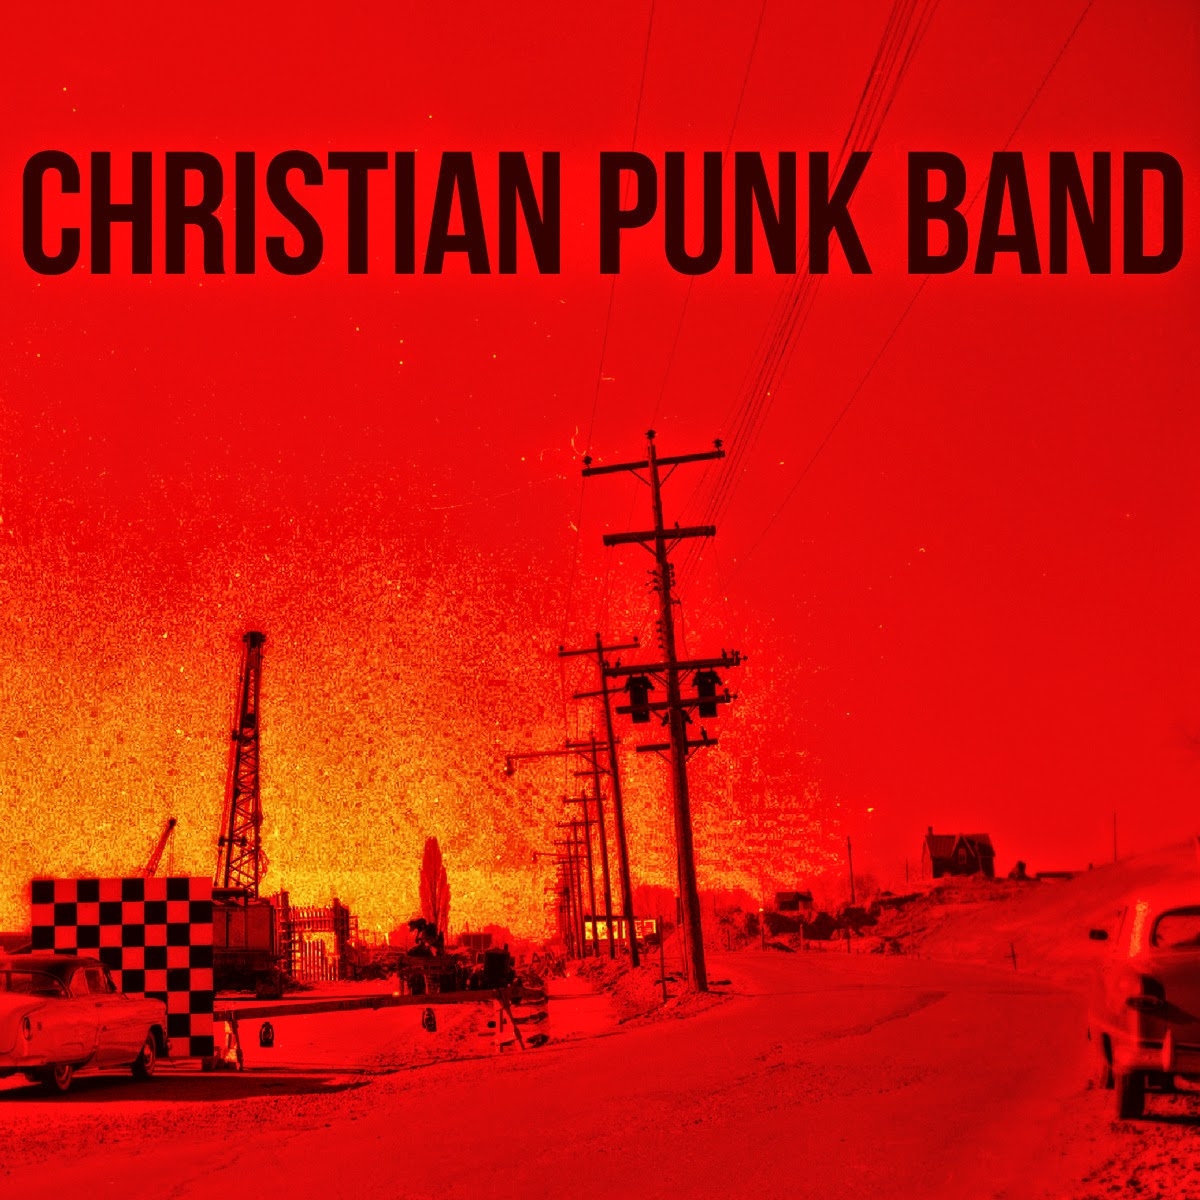 Christian Punk Band